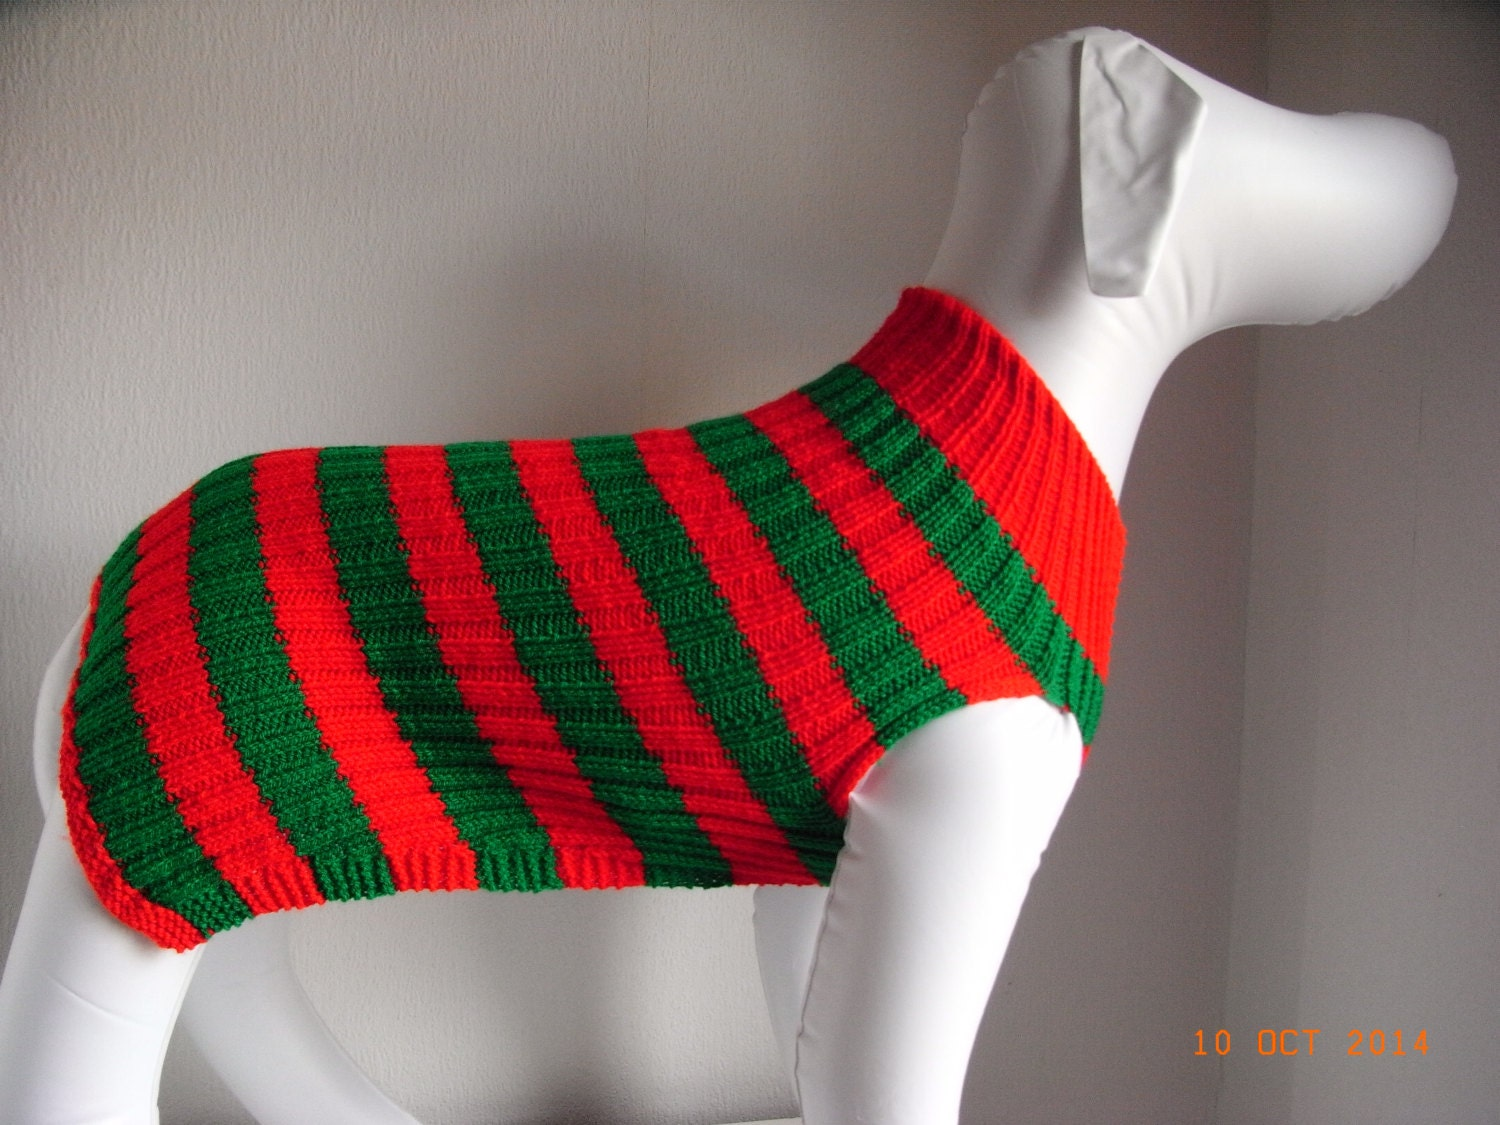 Knitting Pattern For Whippet Coat : Hand knit whippet dog sweater / coat 24 by handmadedogsweaters